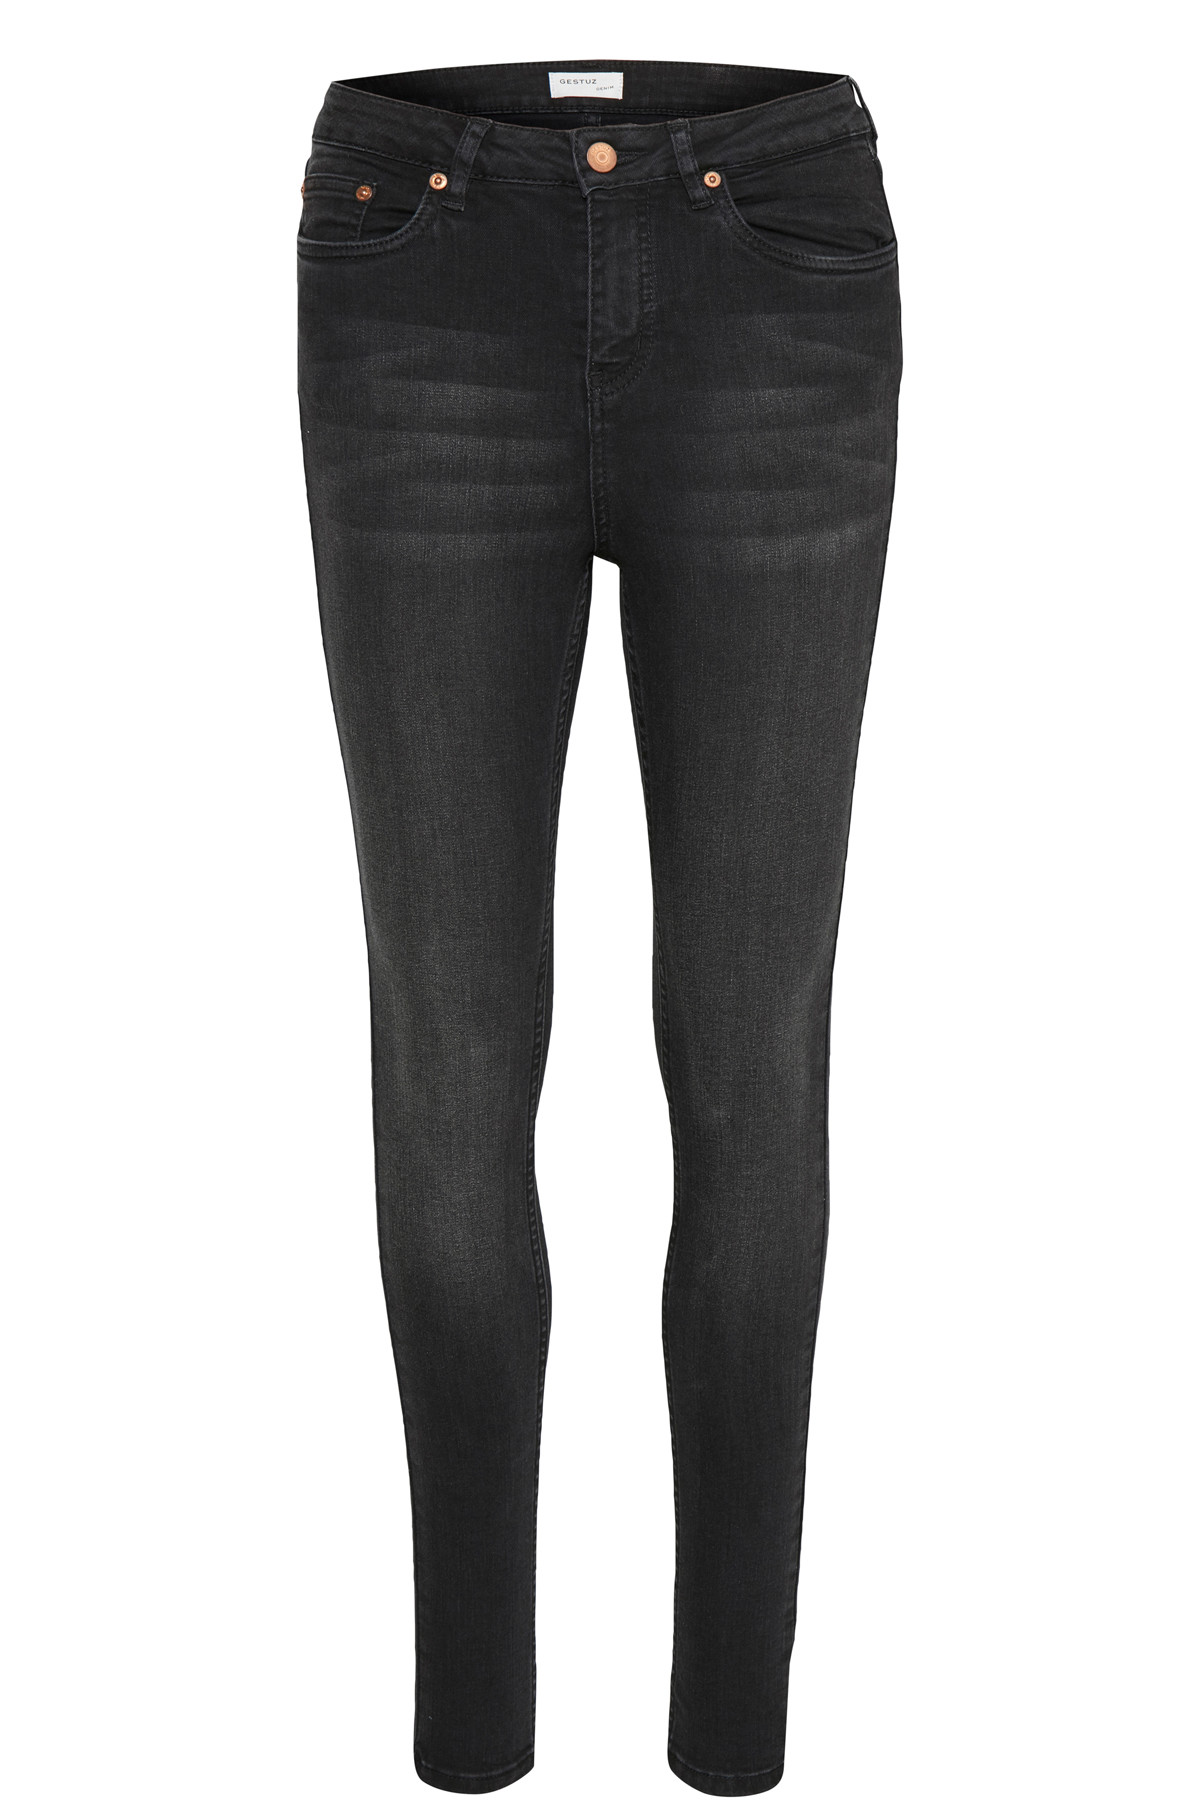 Image of   GESTUZ EMILY JEANS 10900068 (Charcoal Grey 90899, 30, 26)